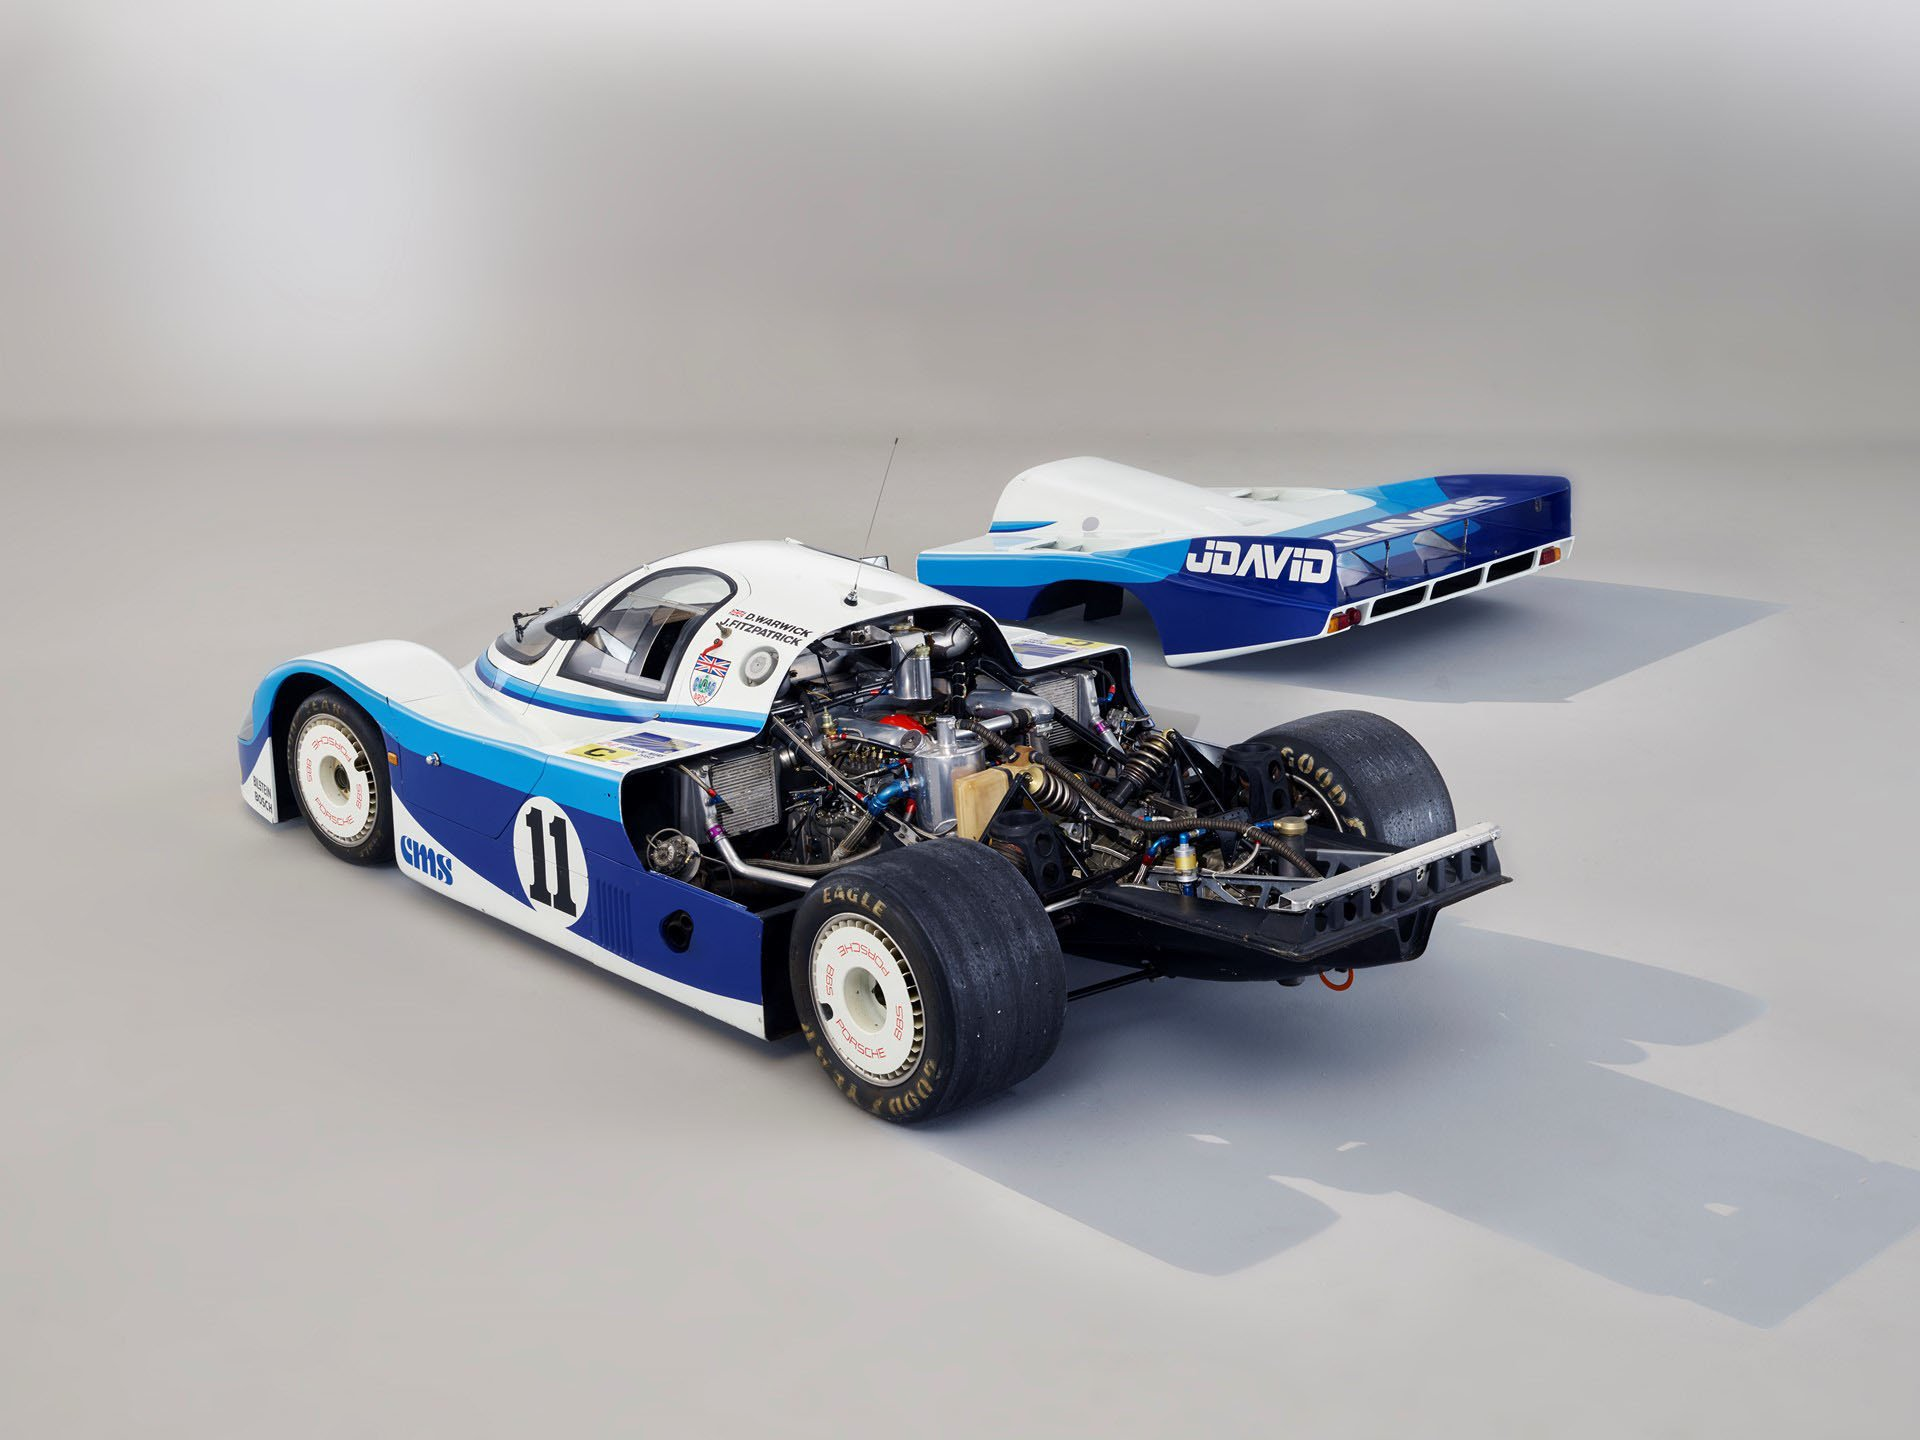 Porsche 956-110 in auction (7)